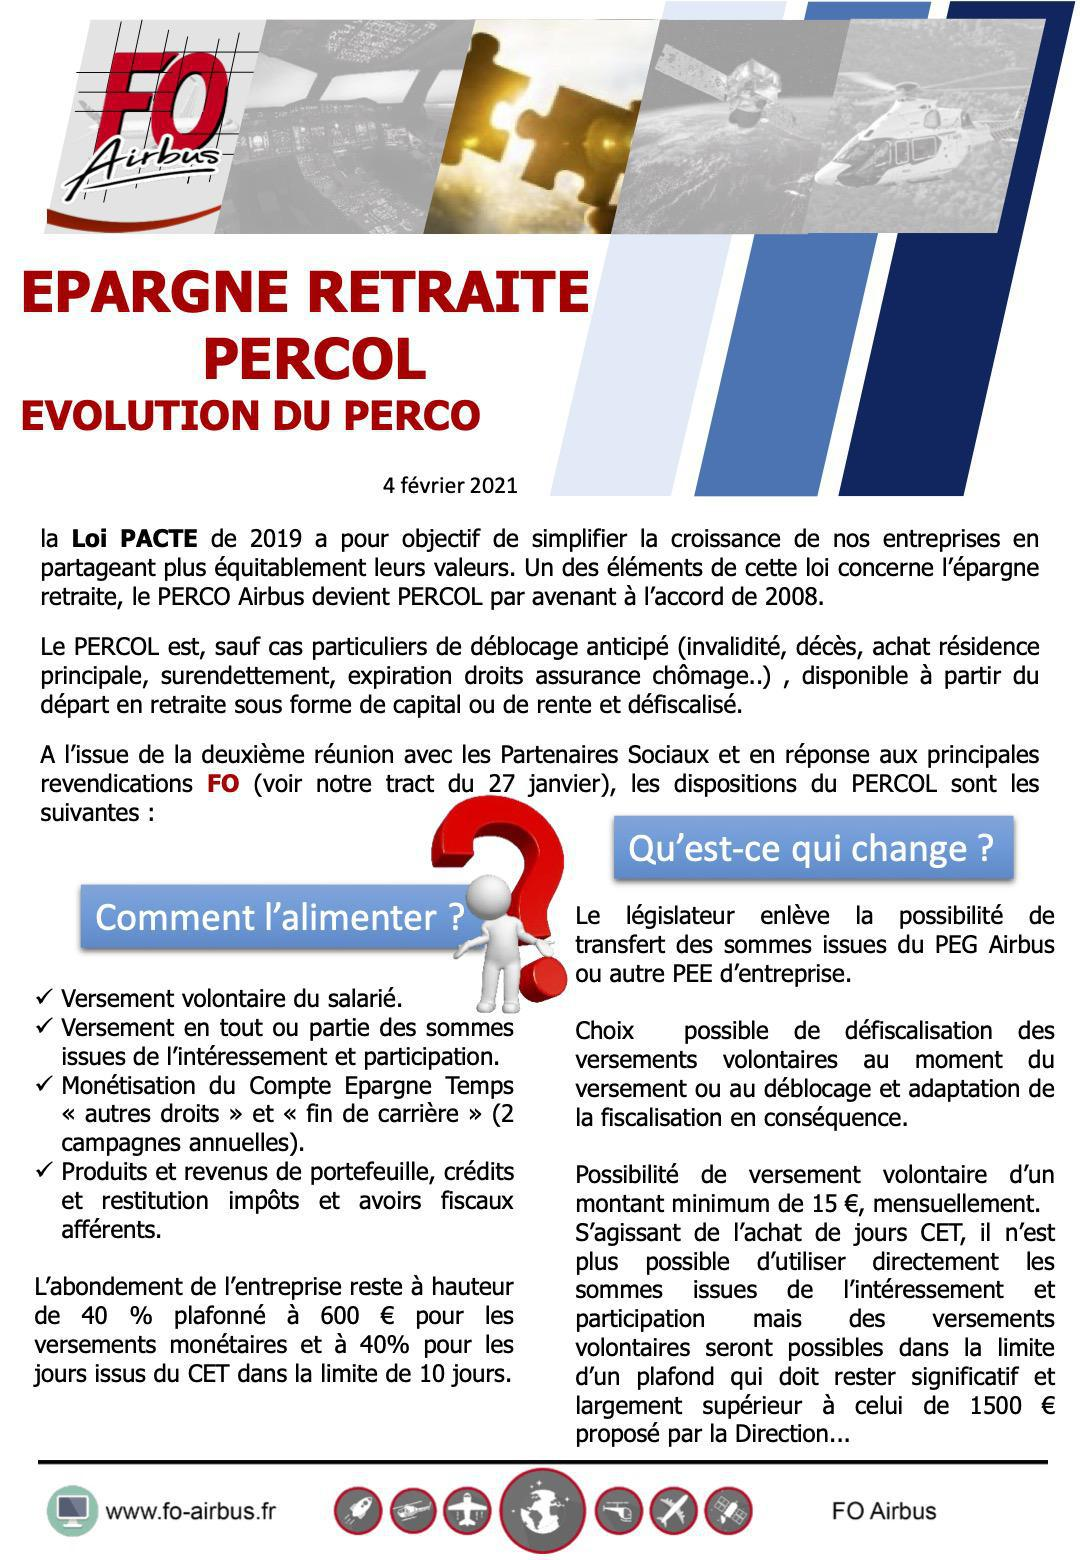 Epargne retraite : les dispositions du PERCOL